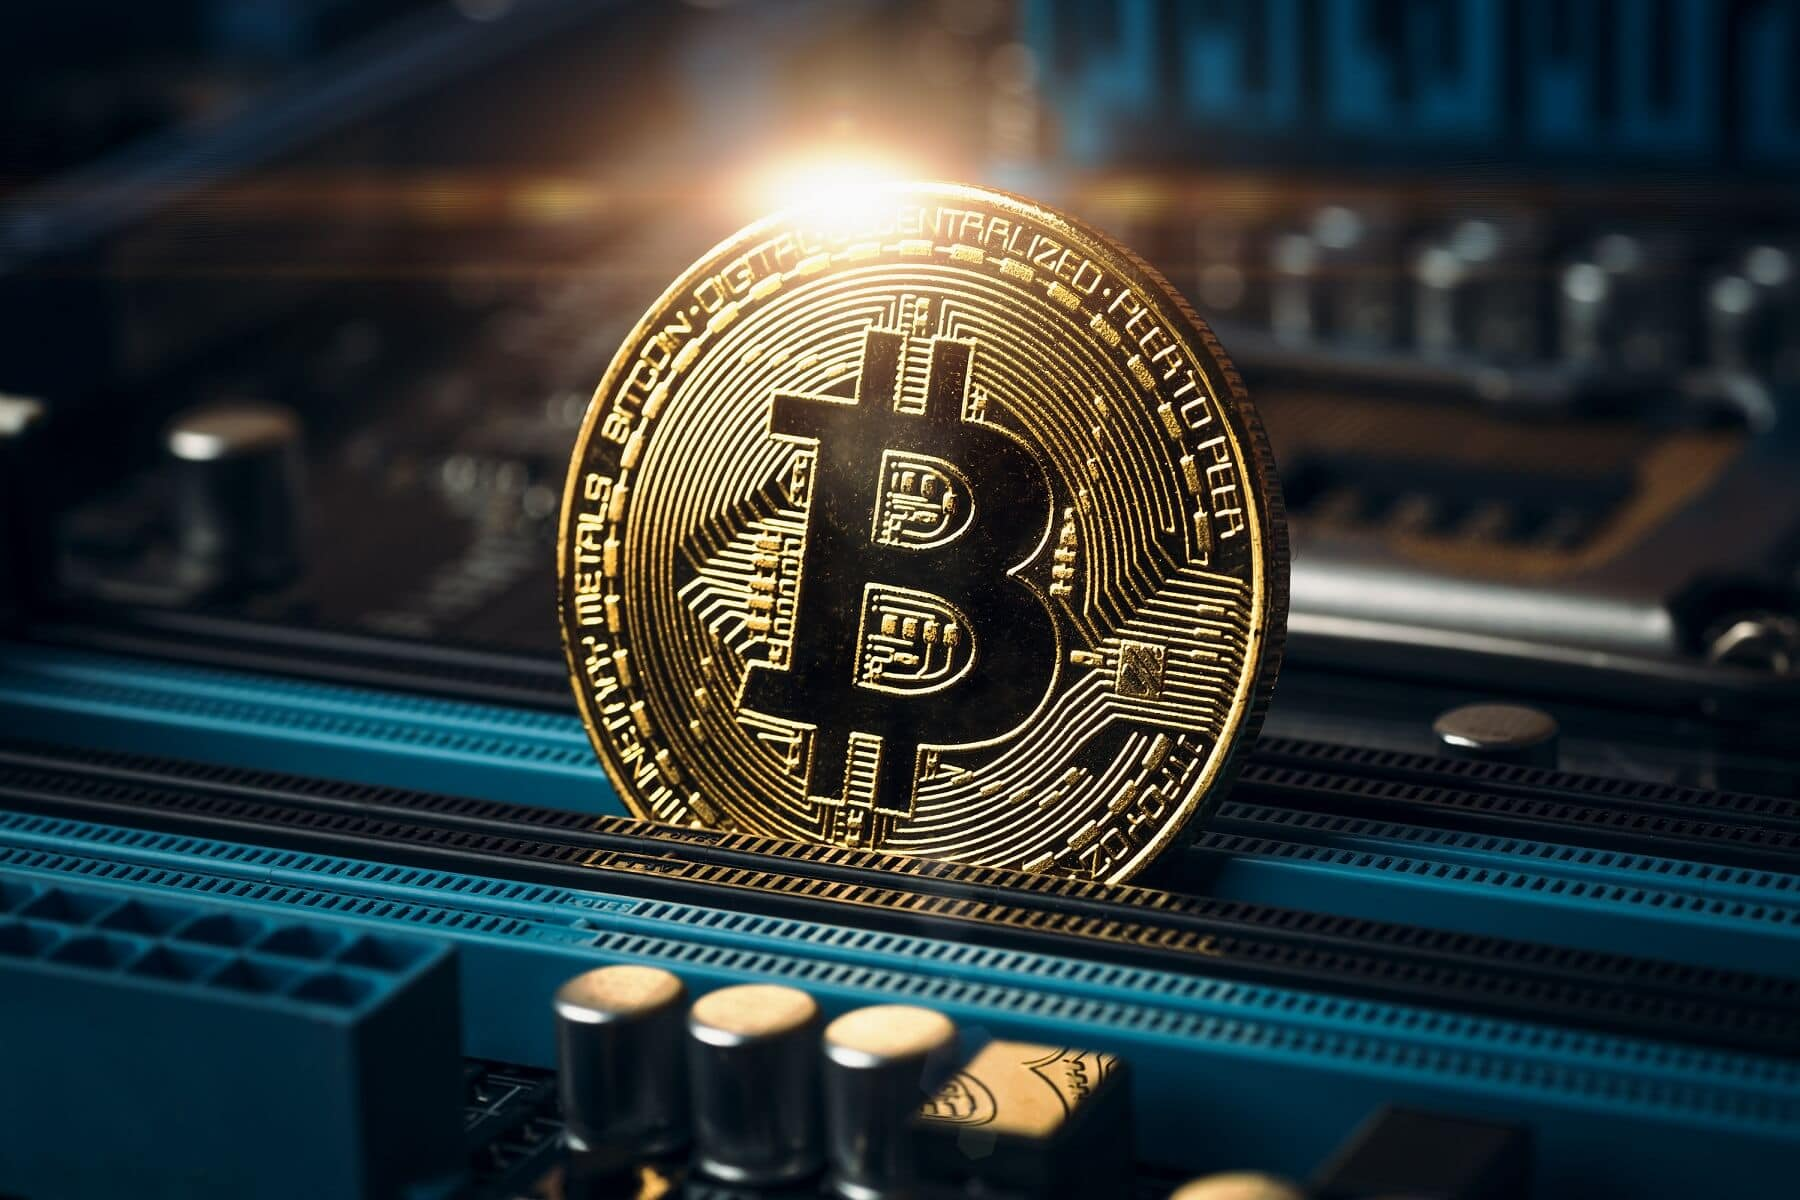 Why Bitcoin, Litecoin, and Ethereum Should Matter to You